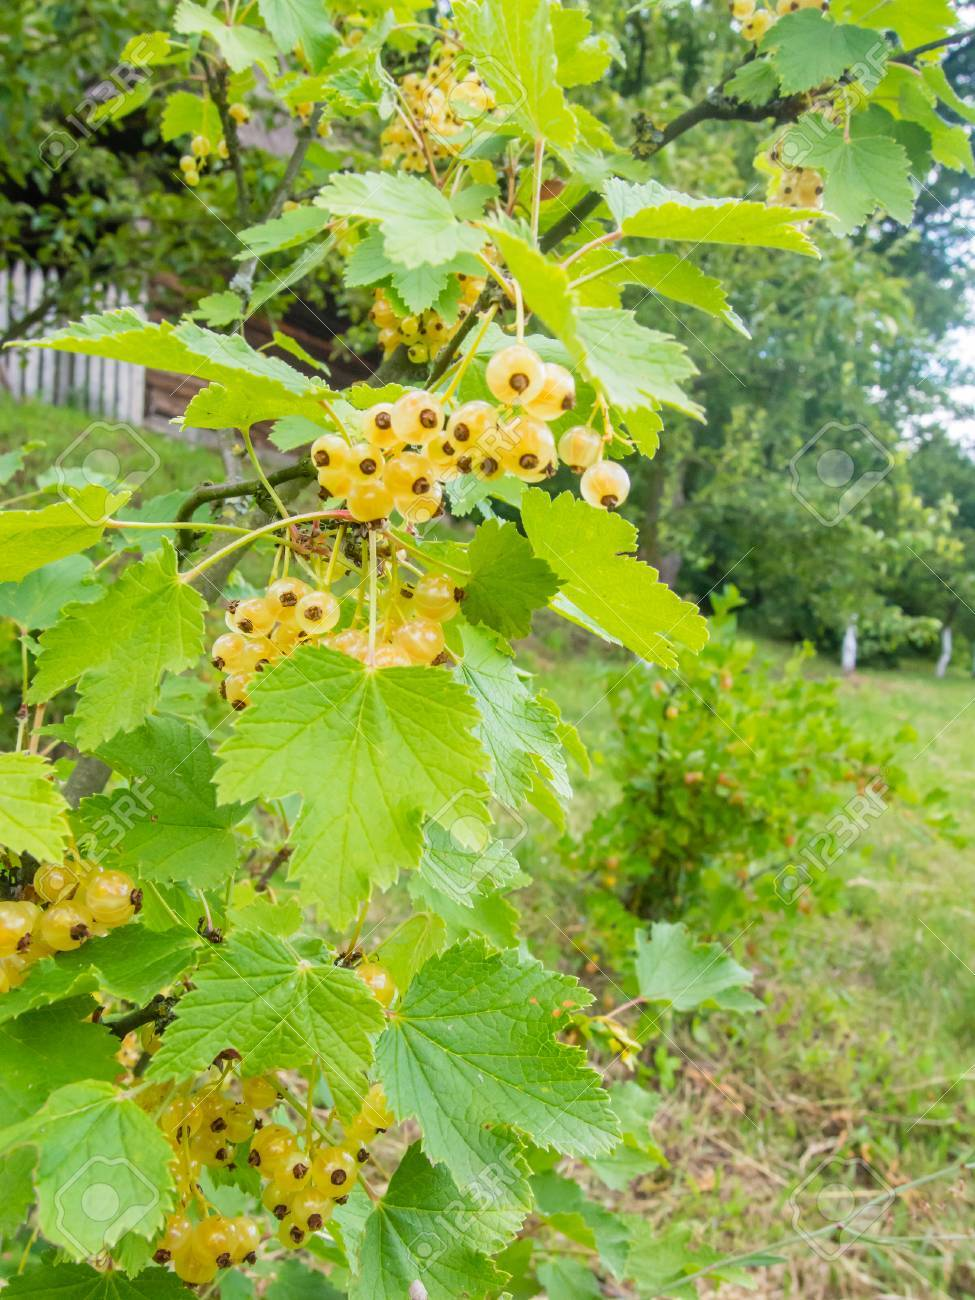 White Currant Whitecurrant Is A Sport Of The Red Currant Ribes